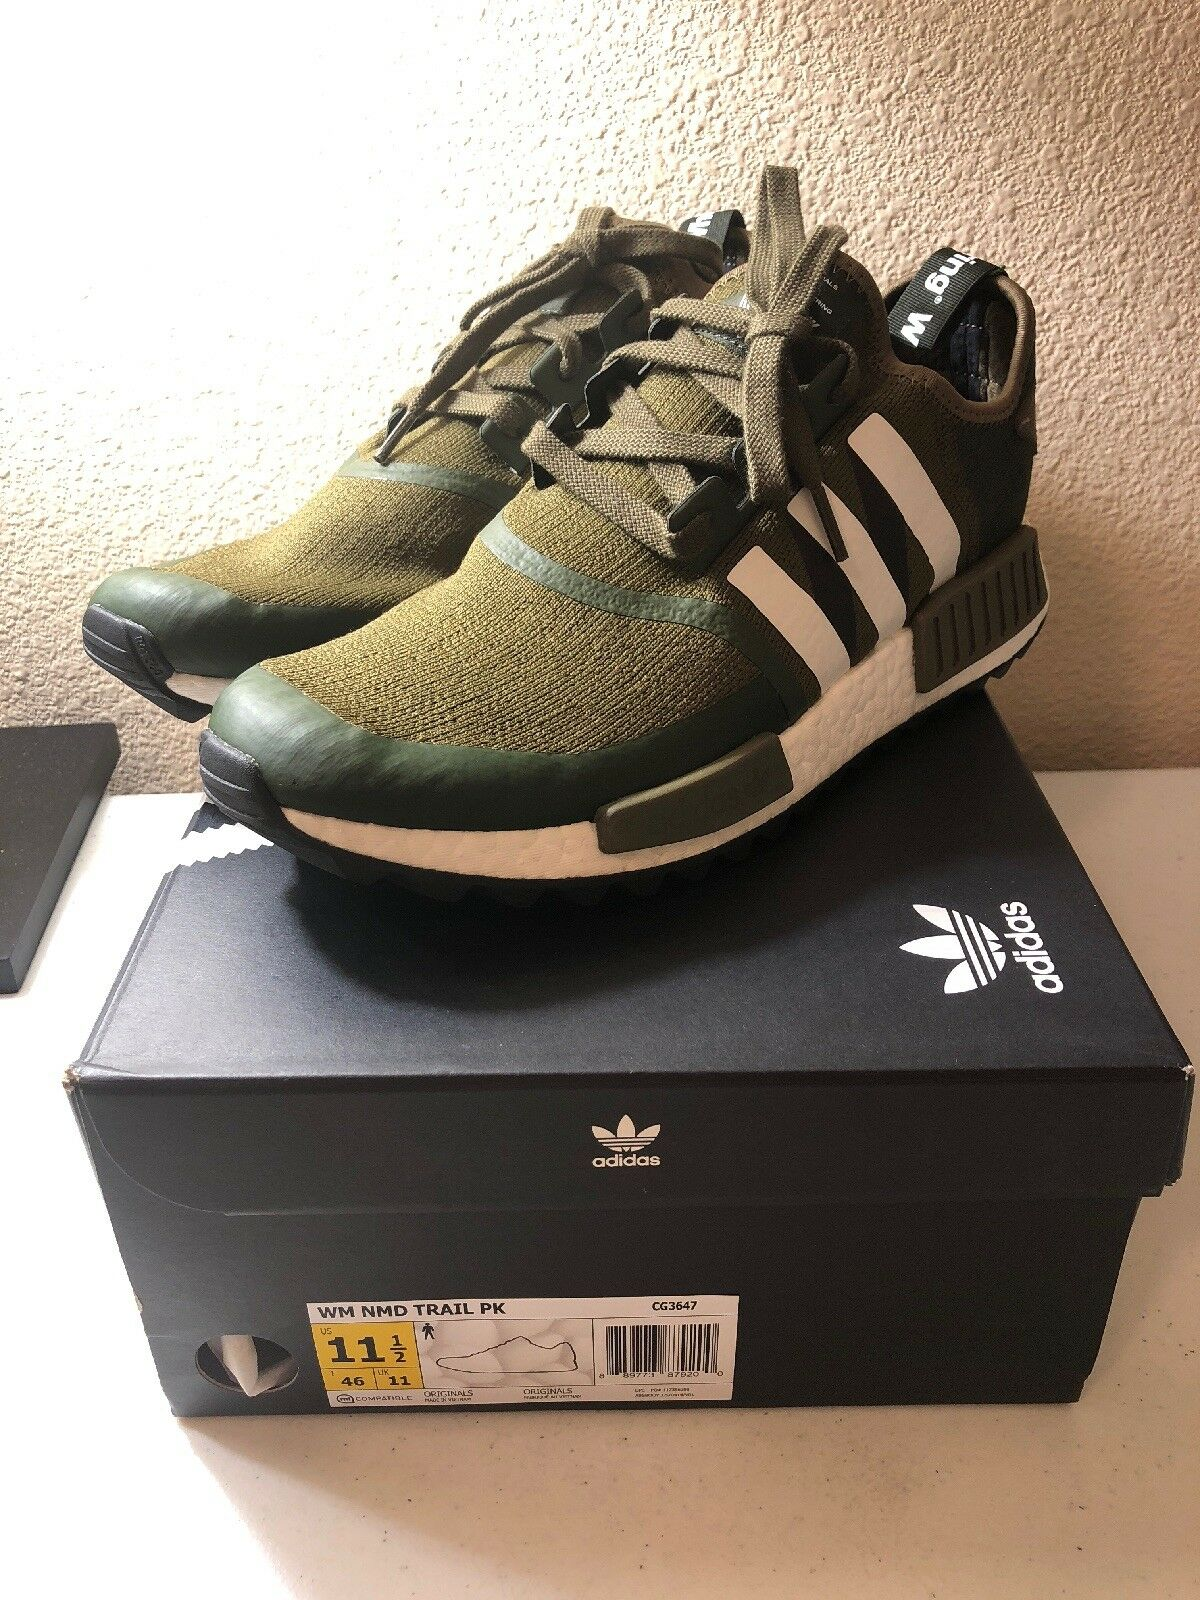 NEW Adidas WM NMD Trail PK size size size 11.5 Olive White Mountaineering CG3647 100% Auth 2c453a